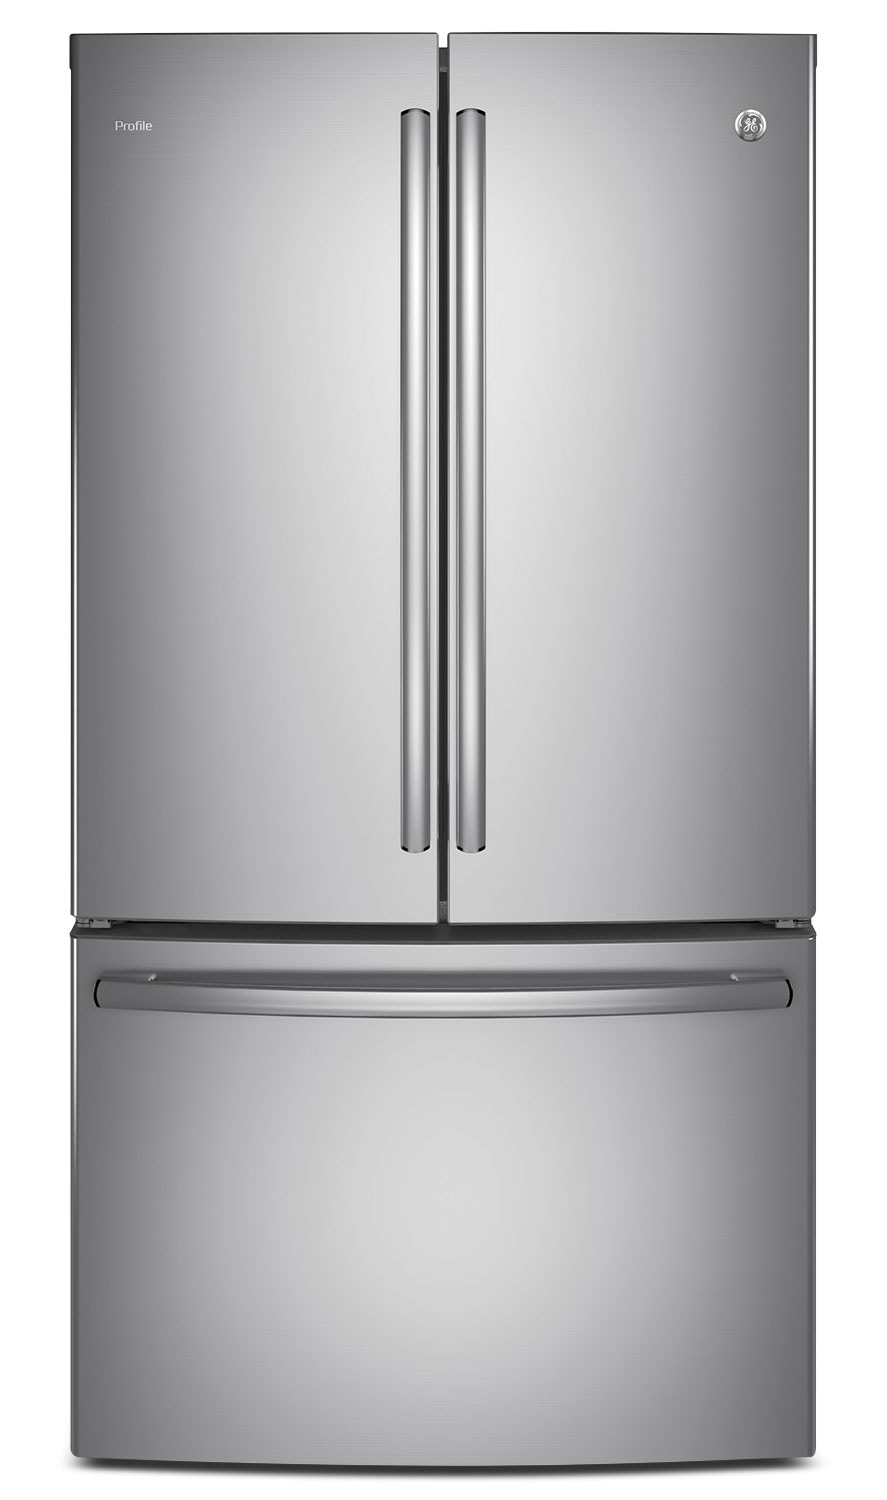 GE 23.1 Cu. Ft. French-Door Refrigerator with Internal Water Dispenser – PWE23KSKSS